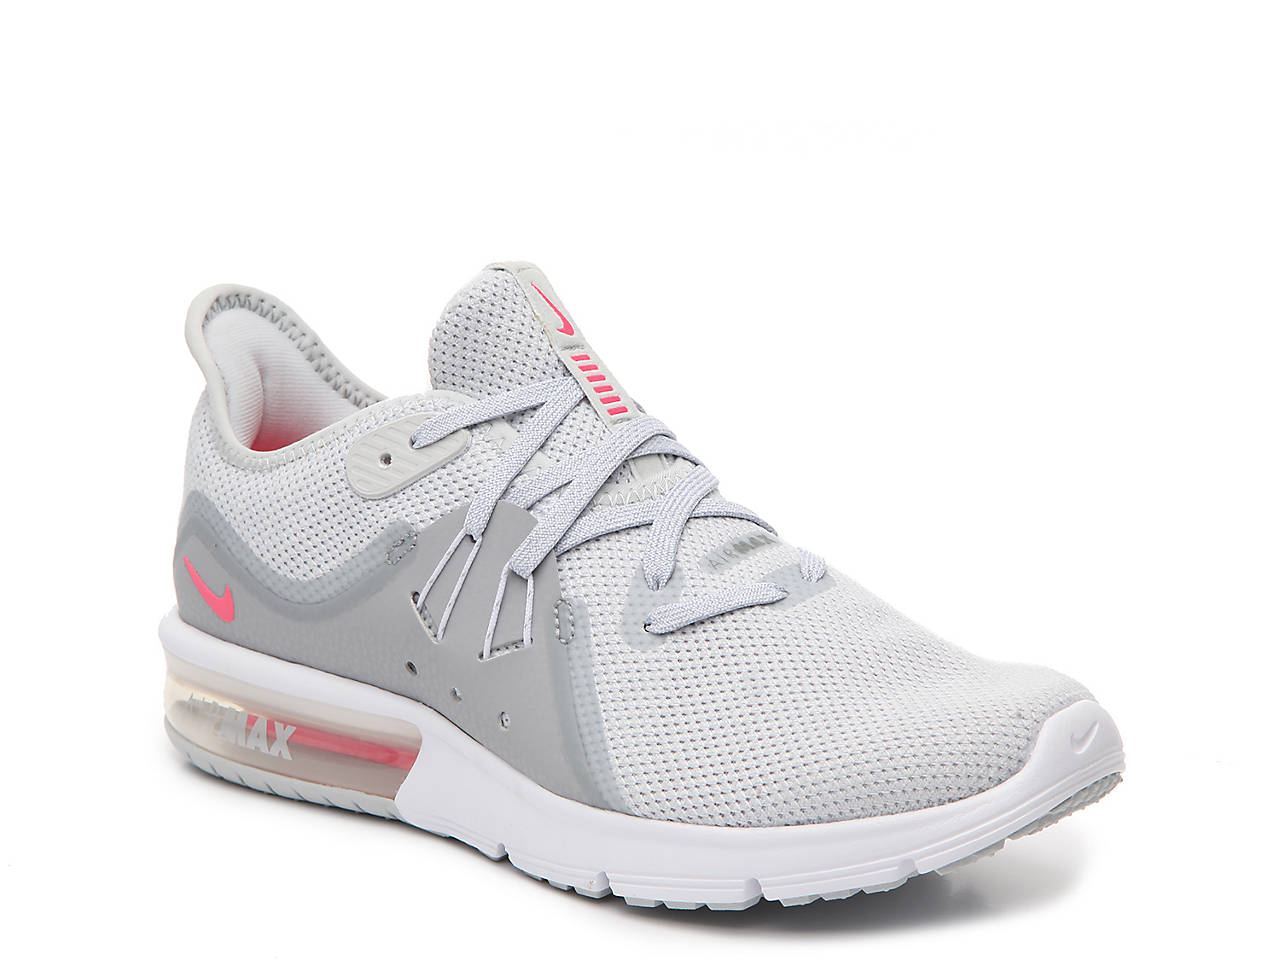 7e3ee025f48c26 Nike Air Max Sequent 3 Lightweight Running Shoe - Women s Women s ...